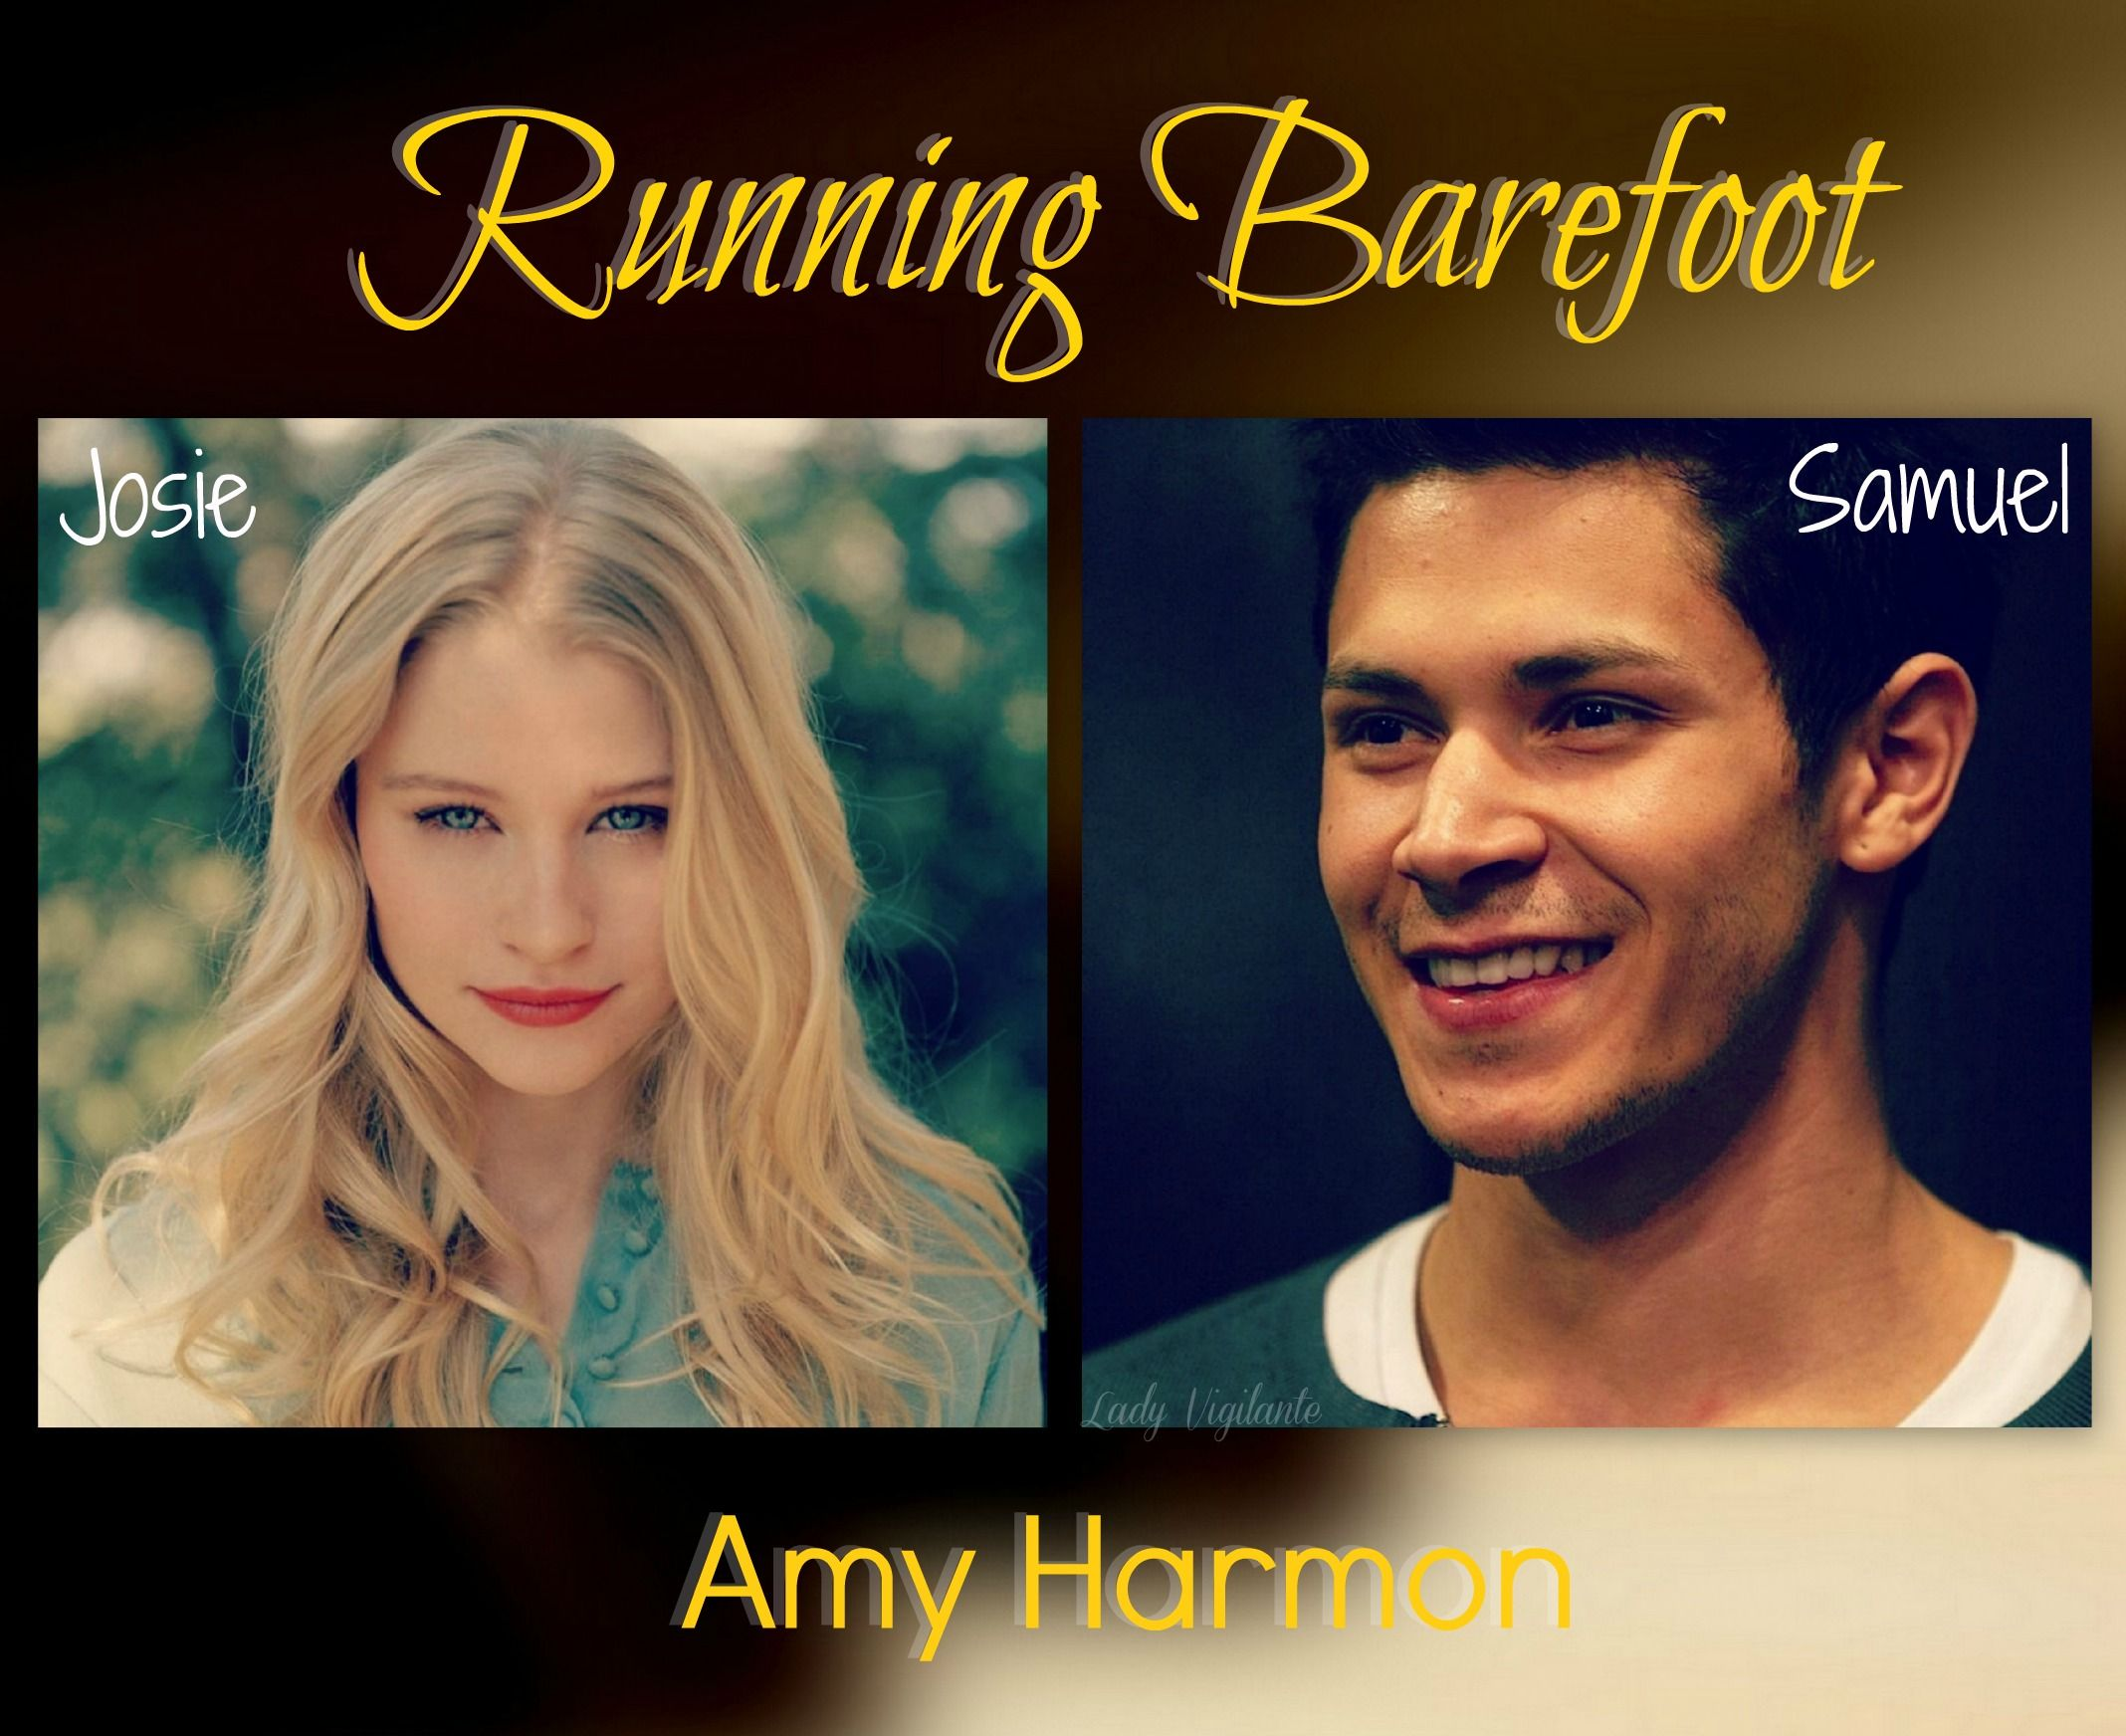 Running Barefoot Amy Harmon Casting Book Art In